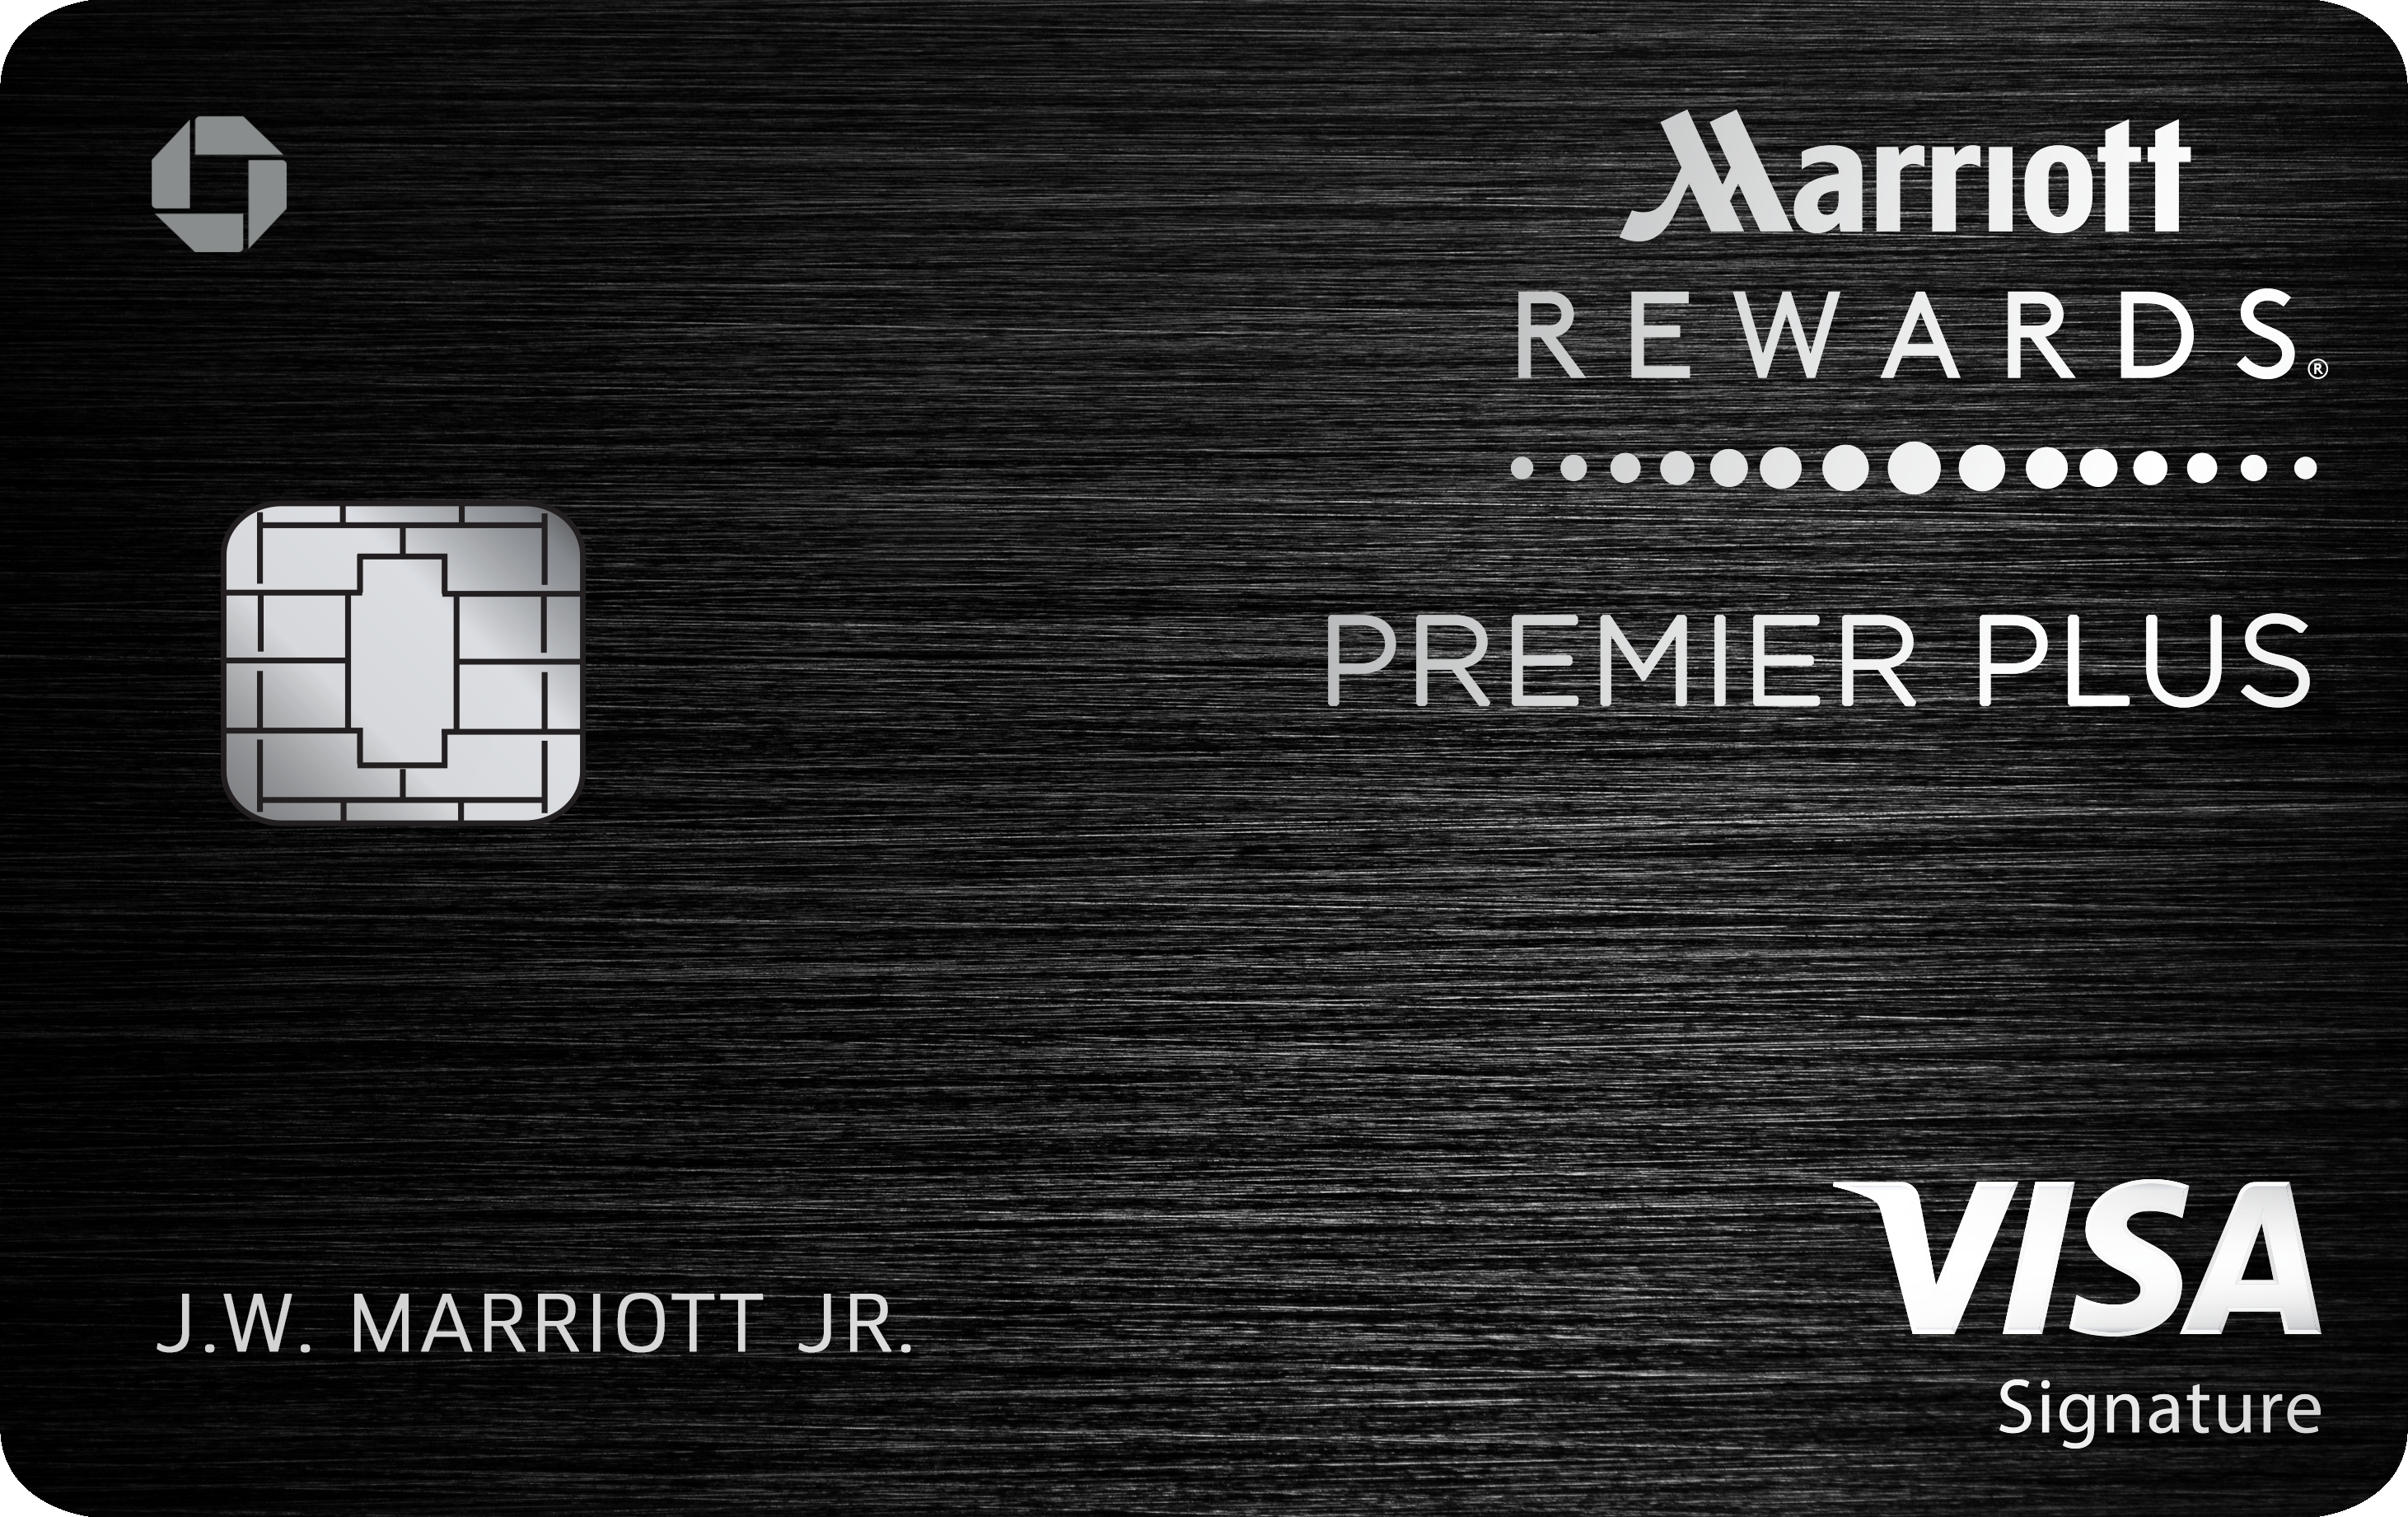 Chase and marriott announce the marriott rewards premier plus credit chase and marriott announce the marriott rewards premier plus credit card a new card with more value more access more perks and a 100000 point limited reheart Gallery